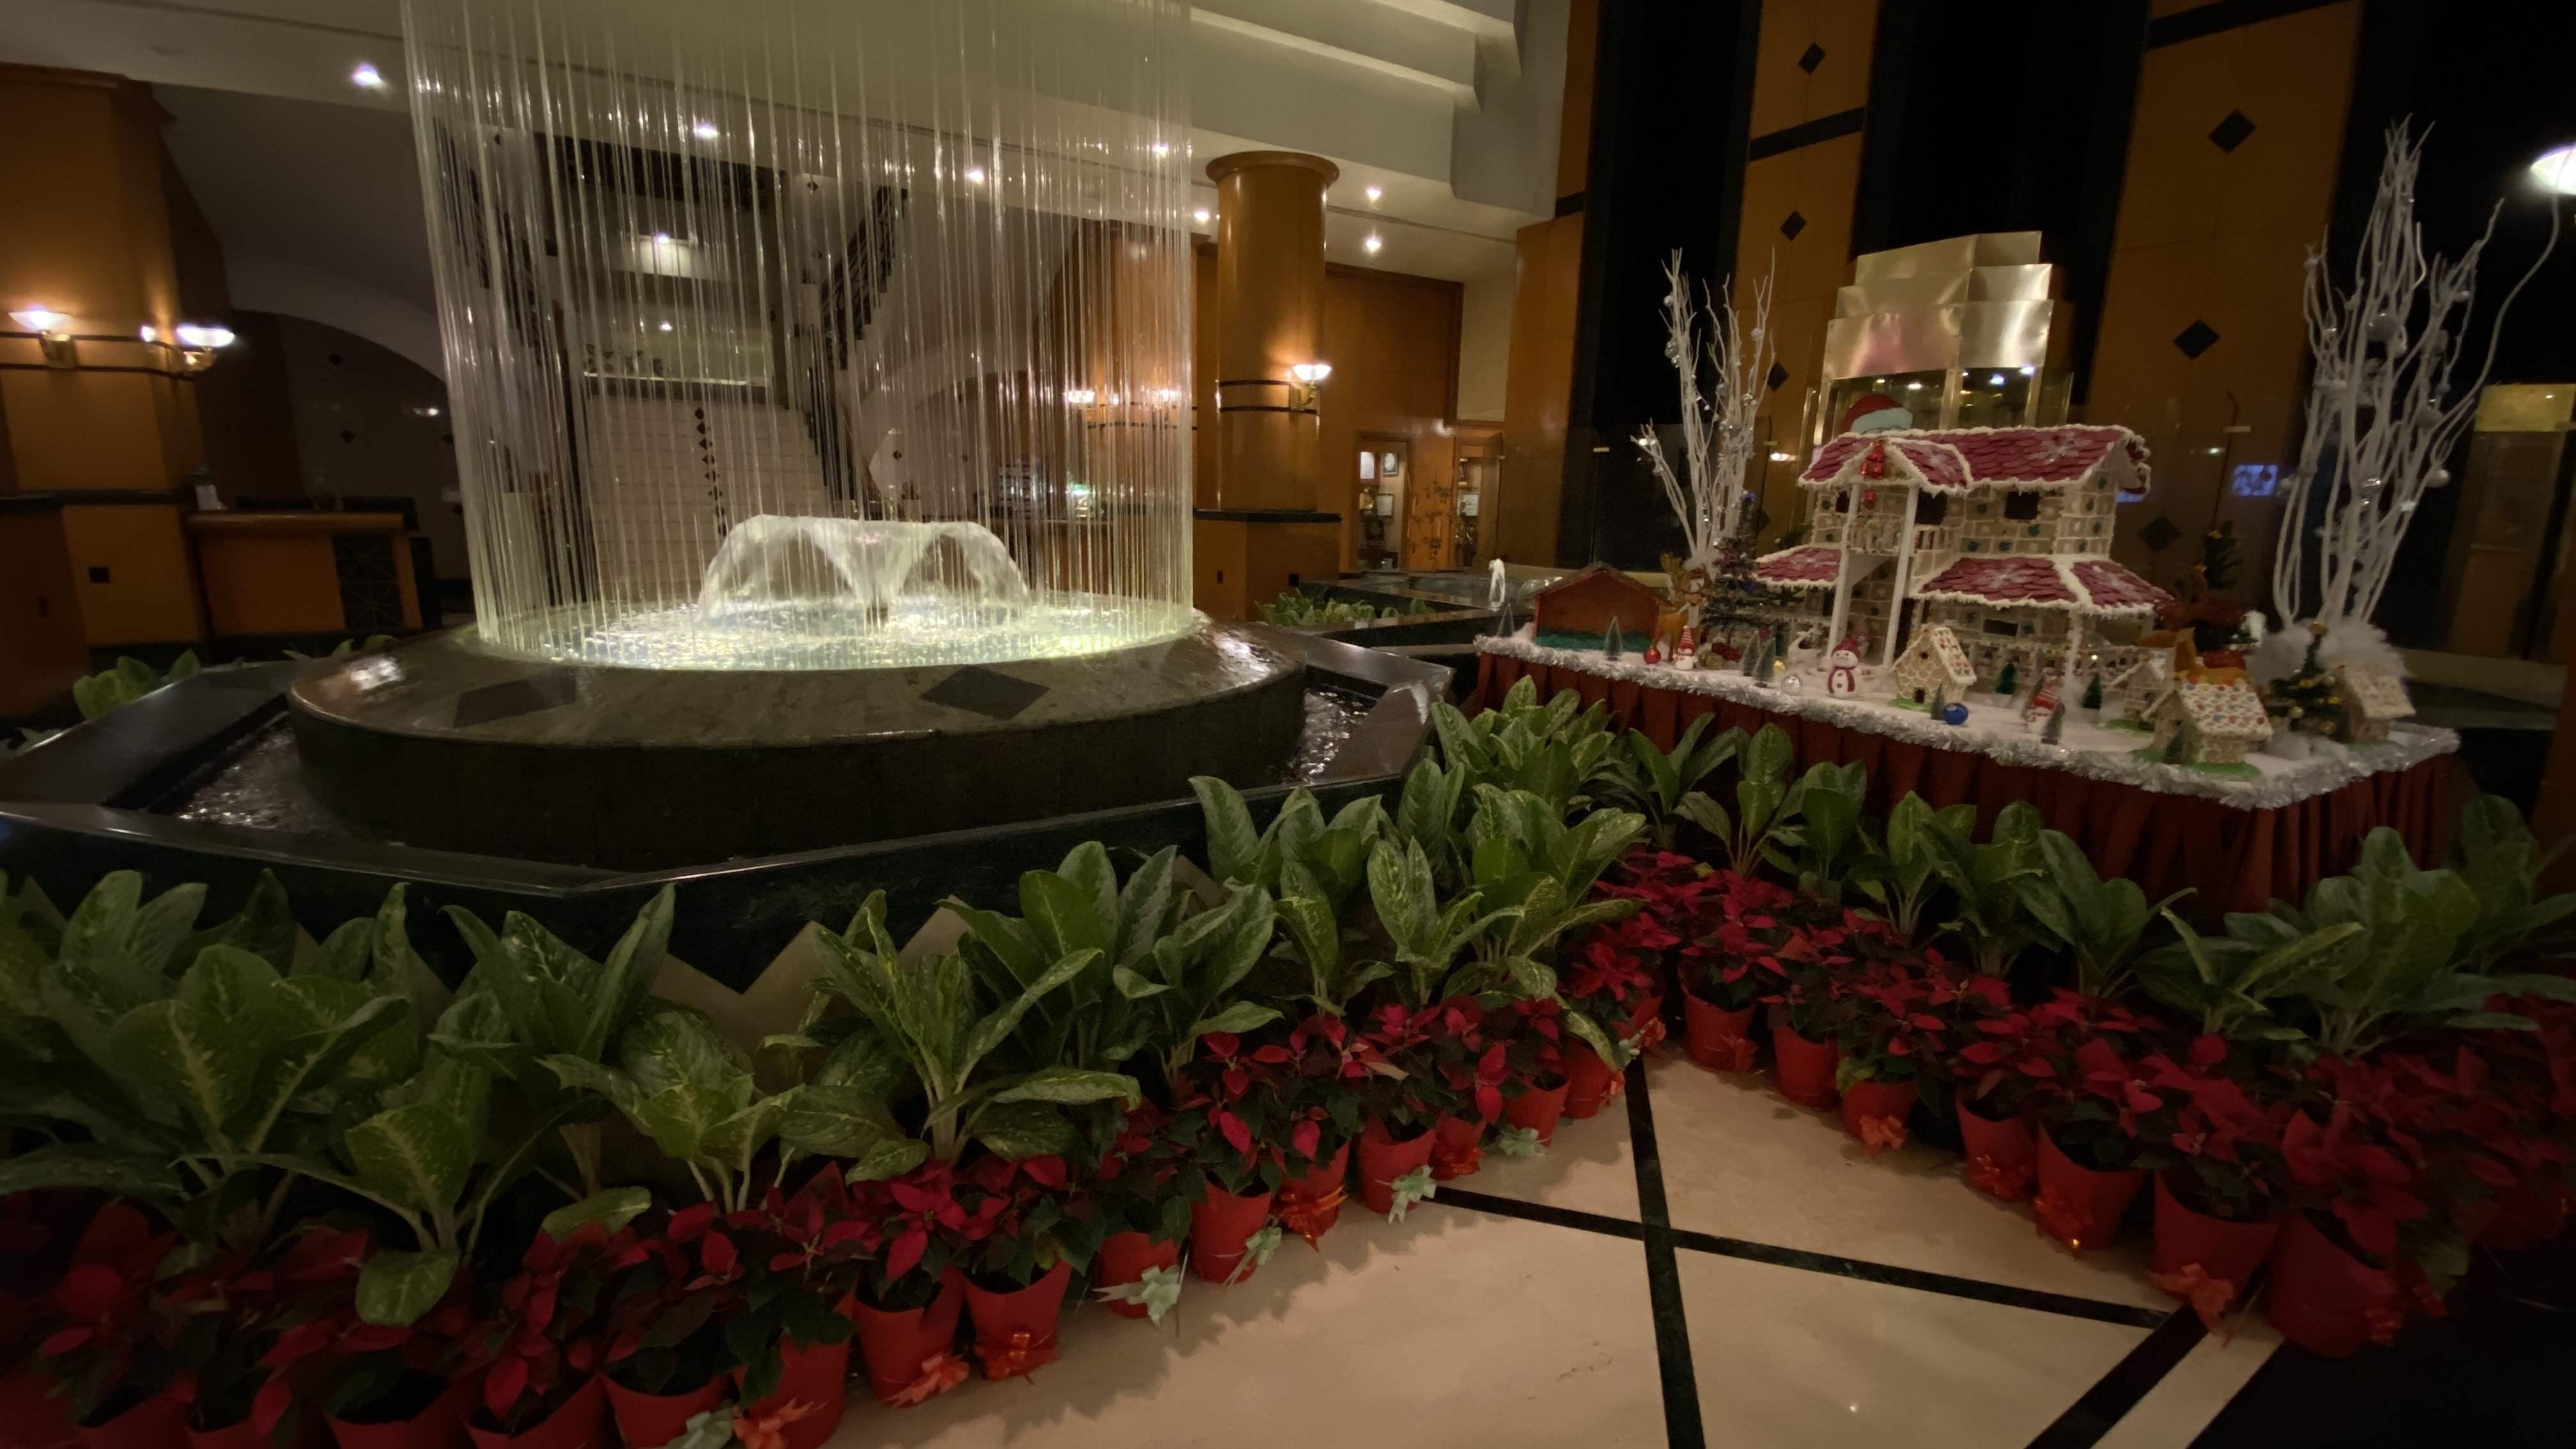 Buffet,Function hall,Meal,Plant,Interior design